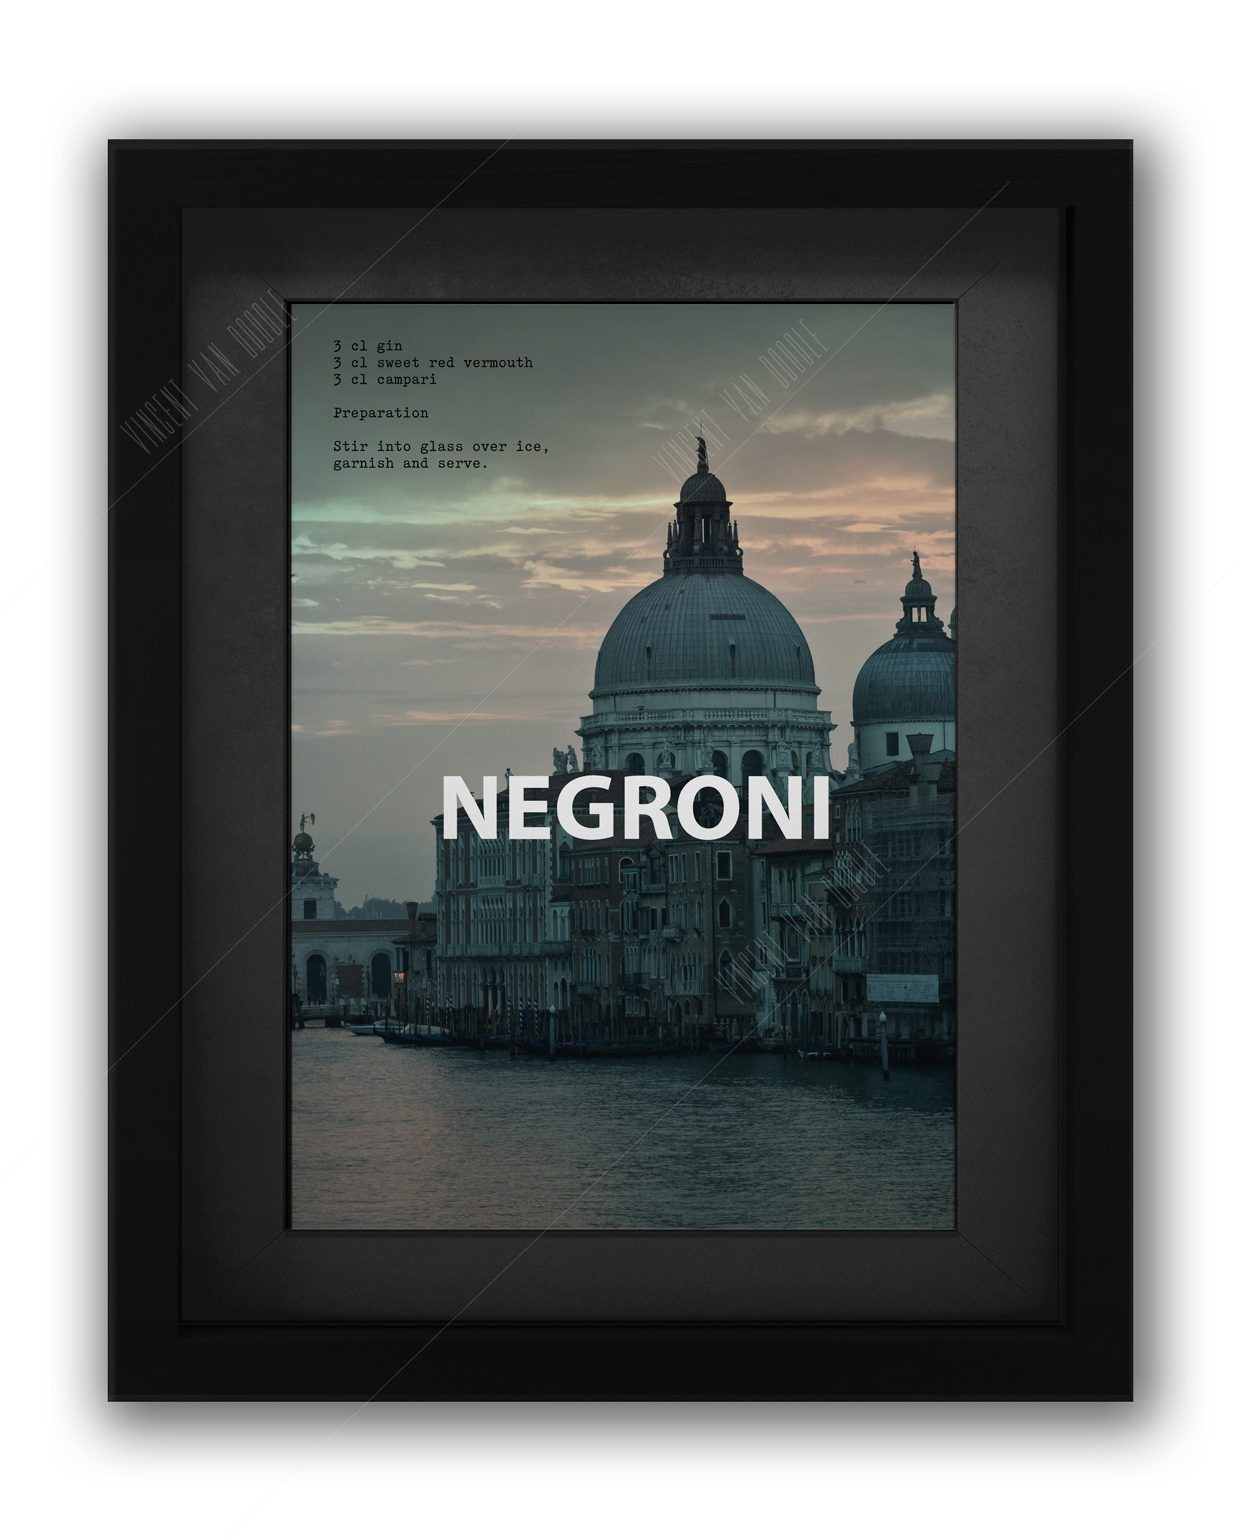 Negroni-Framed-Black